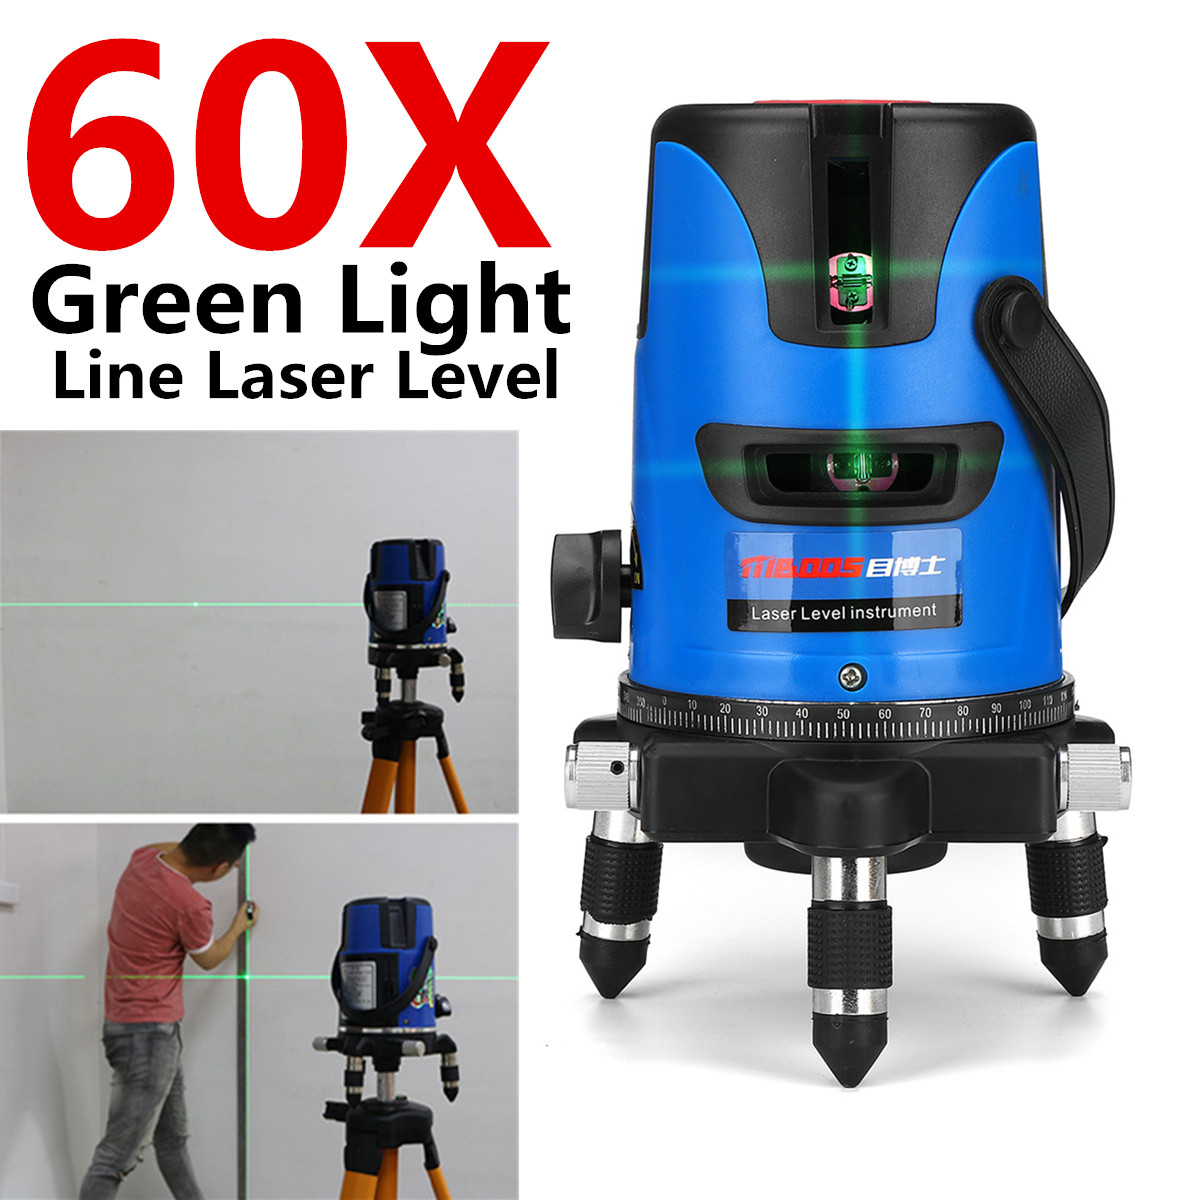 2/3/5 Lines Green Light Line Laser Level Self-leveling Laser +- 1mm/5m Self Leveling Mechanism 360 Rotating Base AC100-240V bbloop email in self inking stamp rectangular laser engraved blue